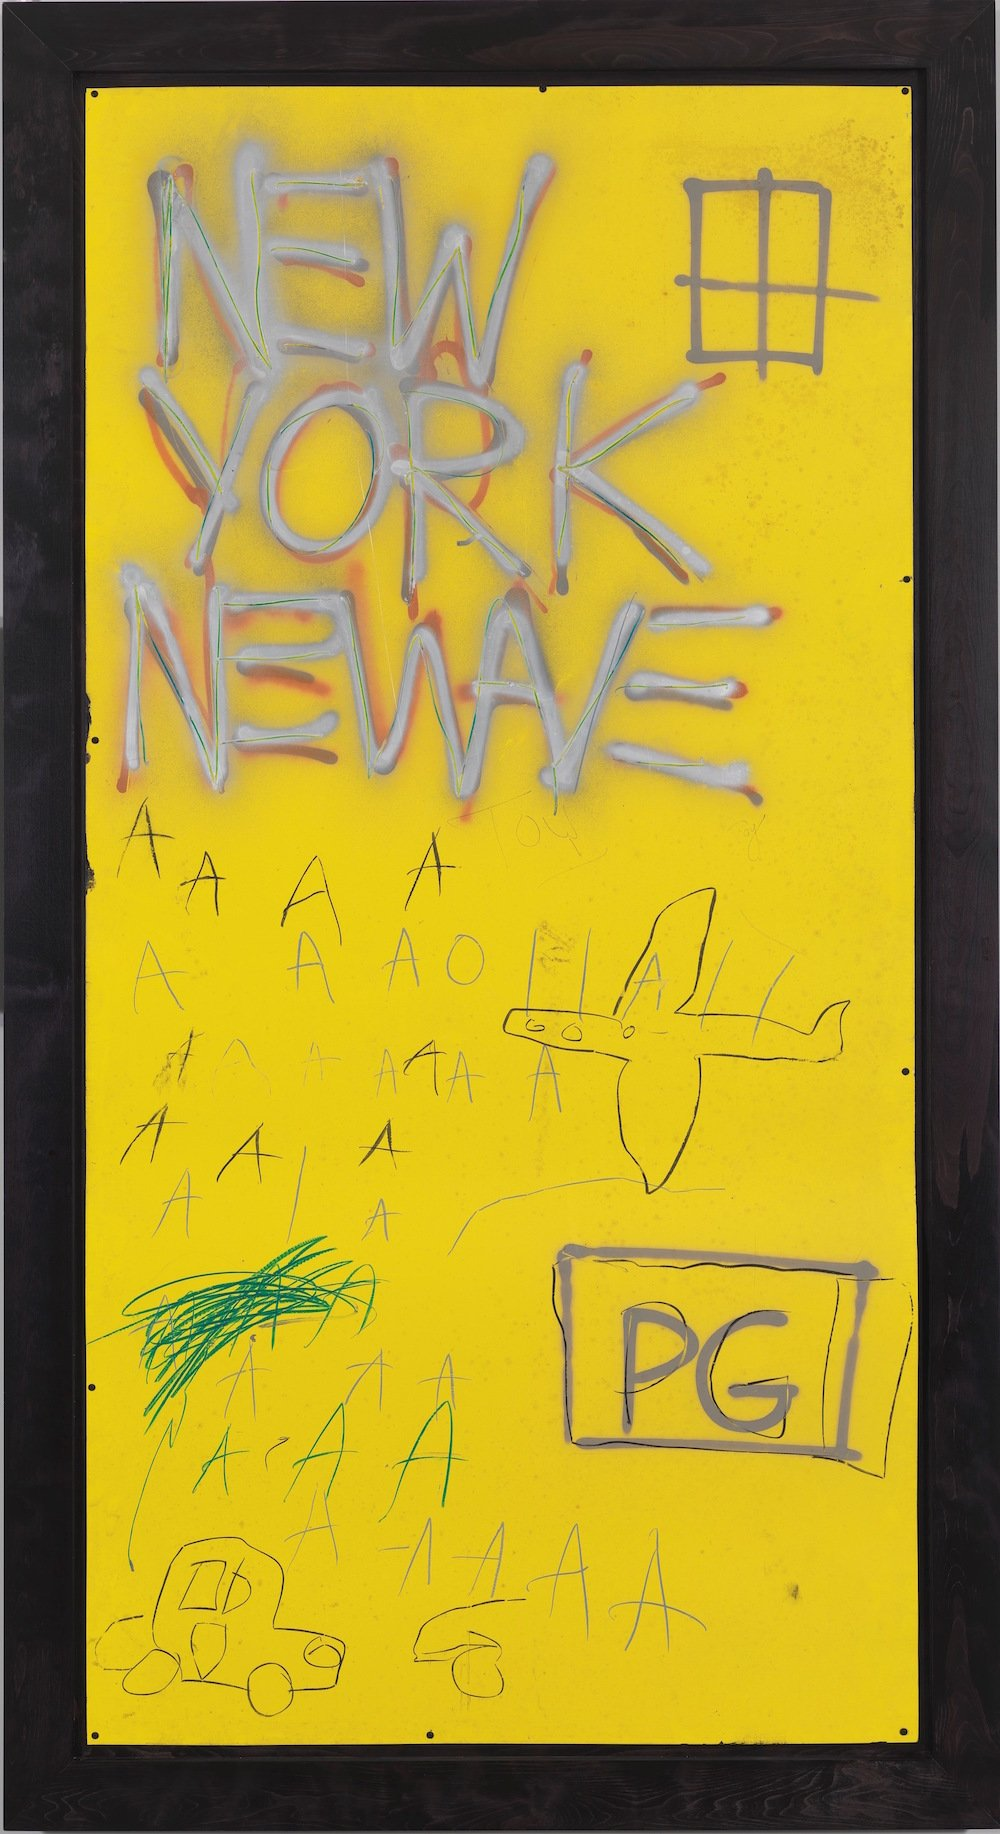 Jean-Michel Basquiat, Untitled, 1980, Courtesy Whitney Museum of American Art © Estate of Jean-Michel Basquiat/ Artists Rights Society (ARS), New York/ ADAGP, Paris. Licensed by Artestar, NY